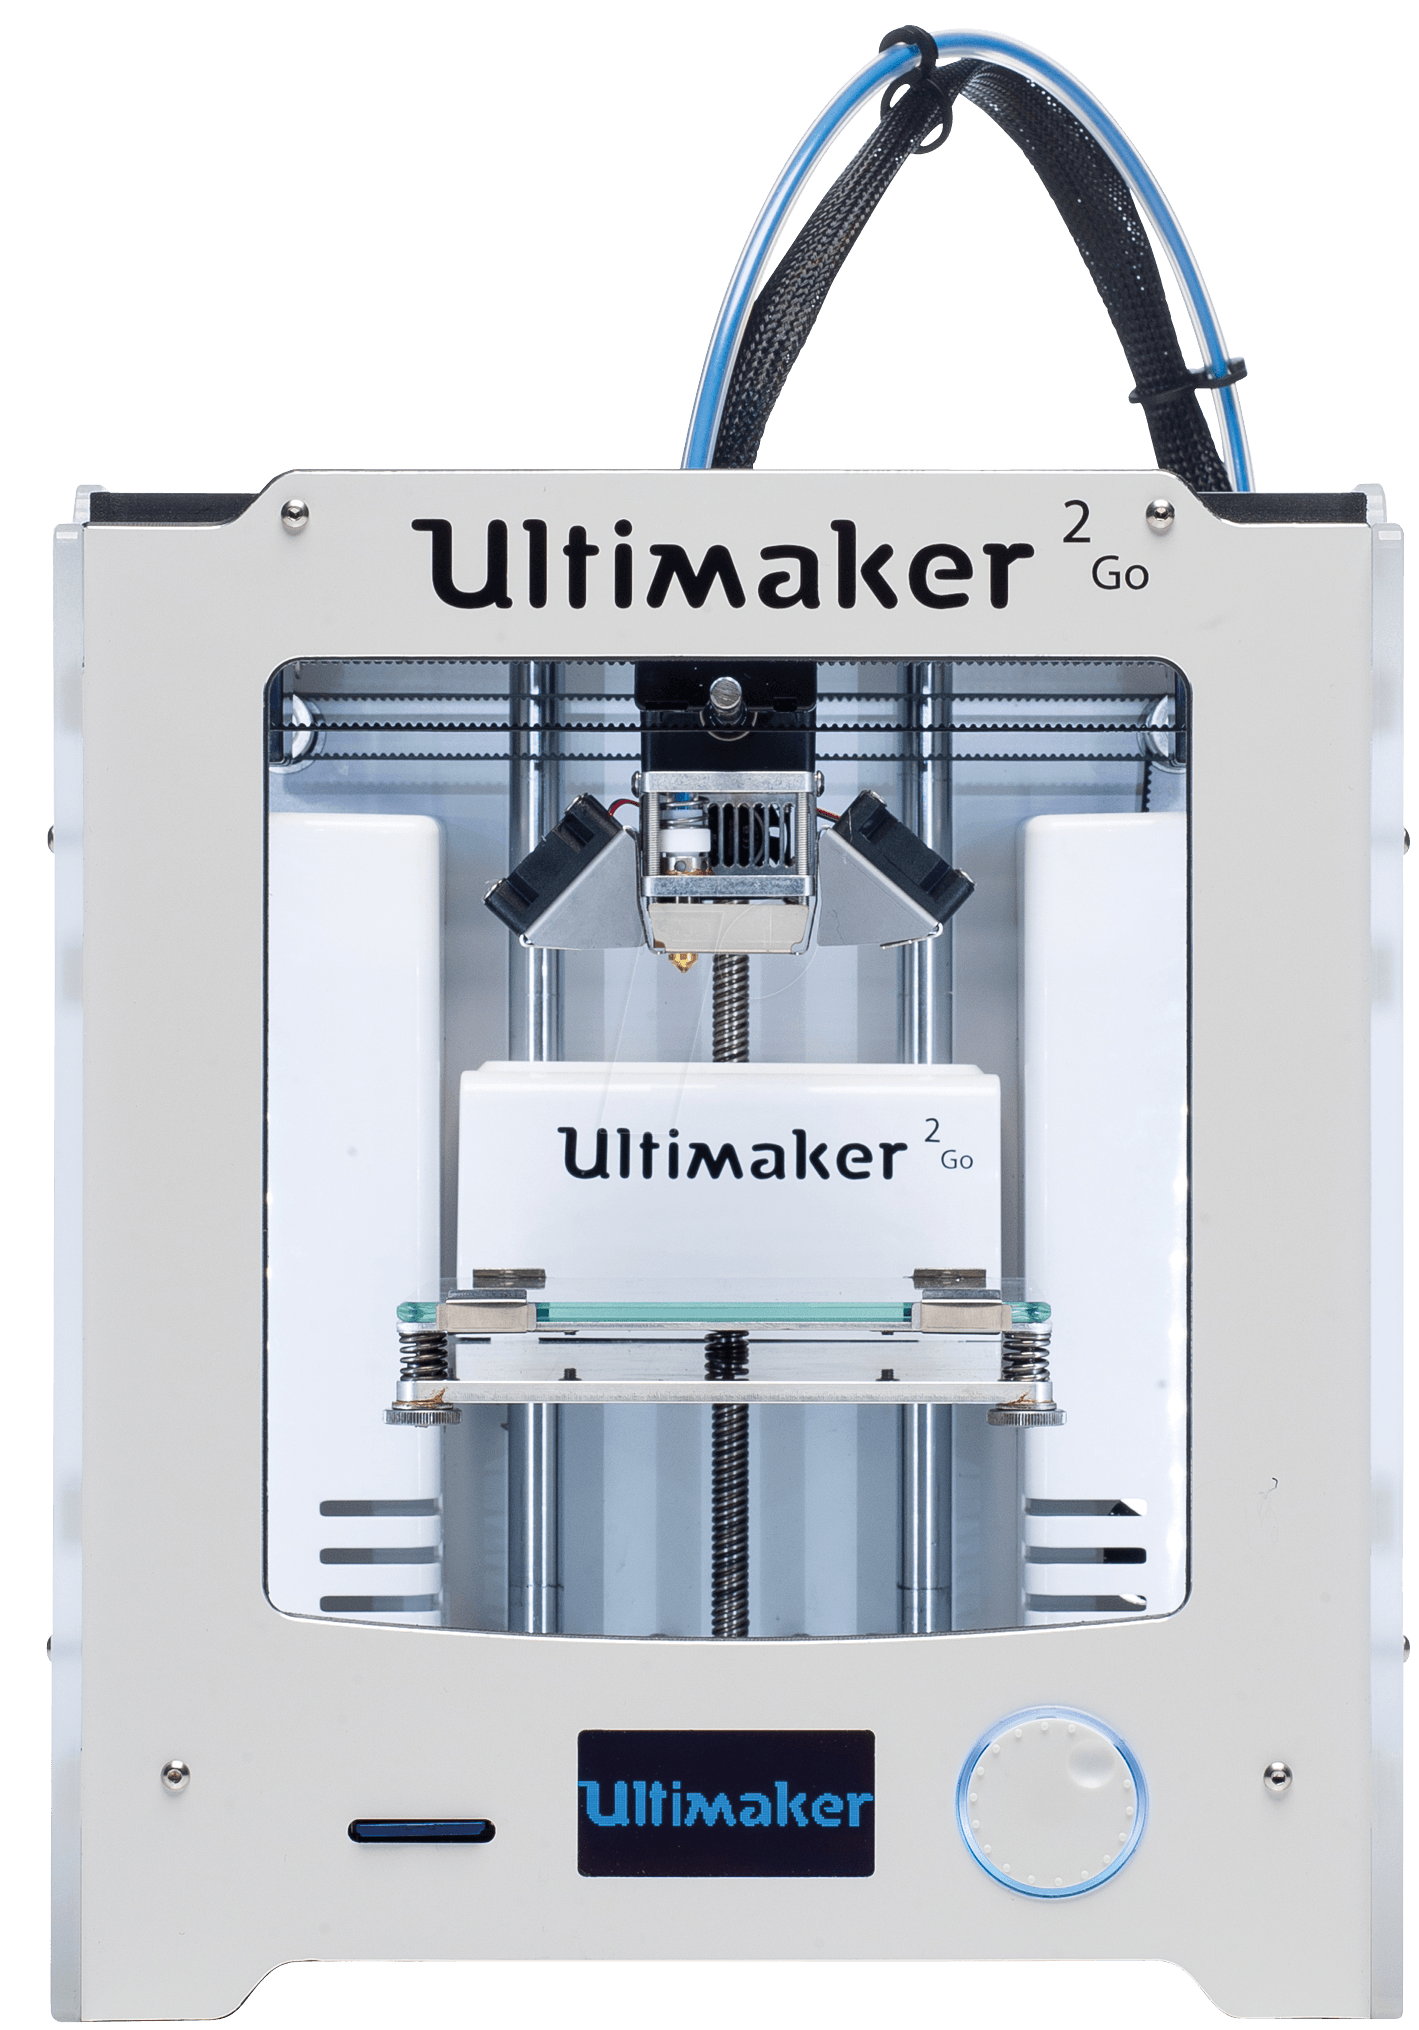 The Ultimaker2 Go